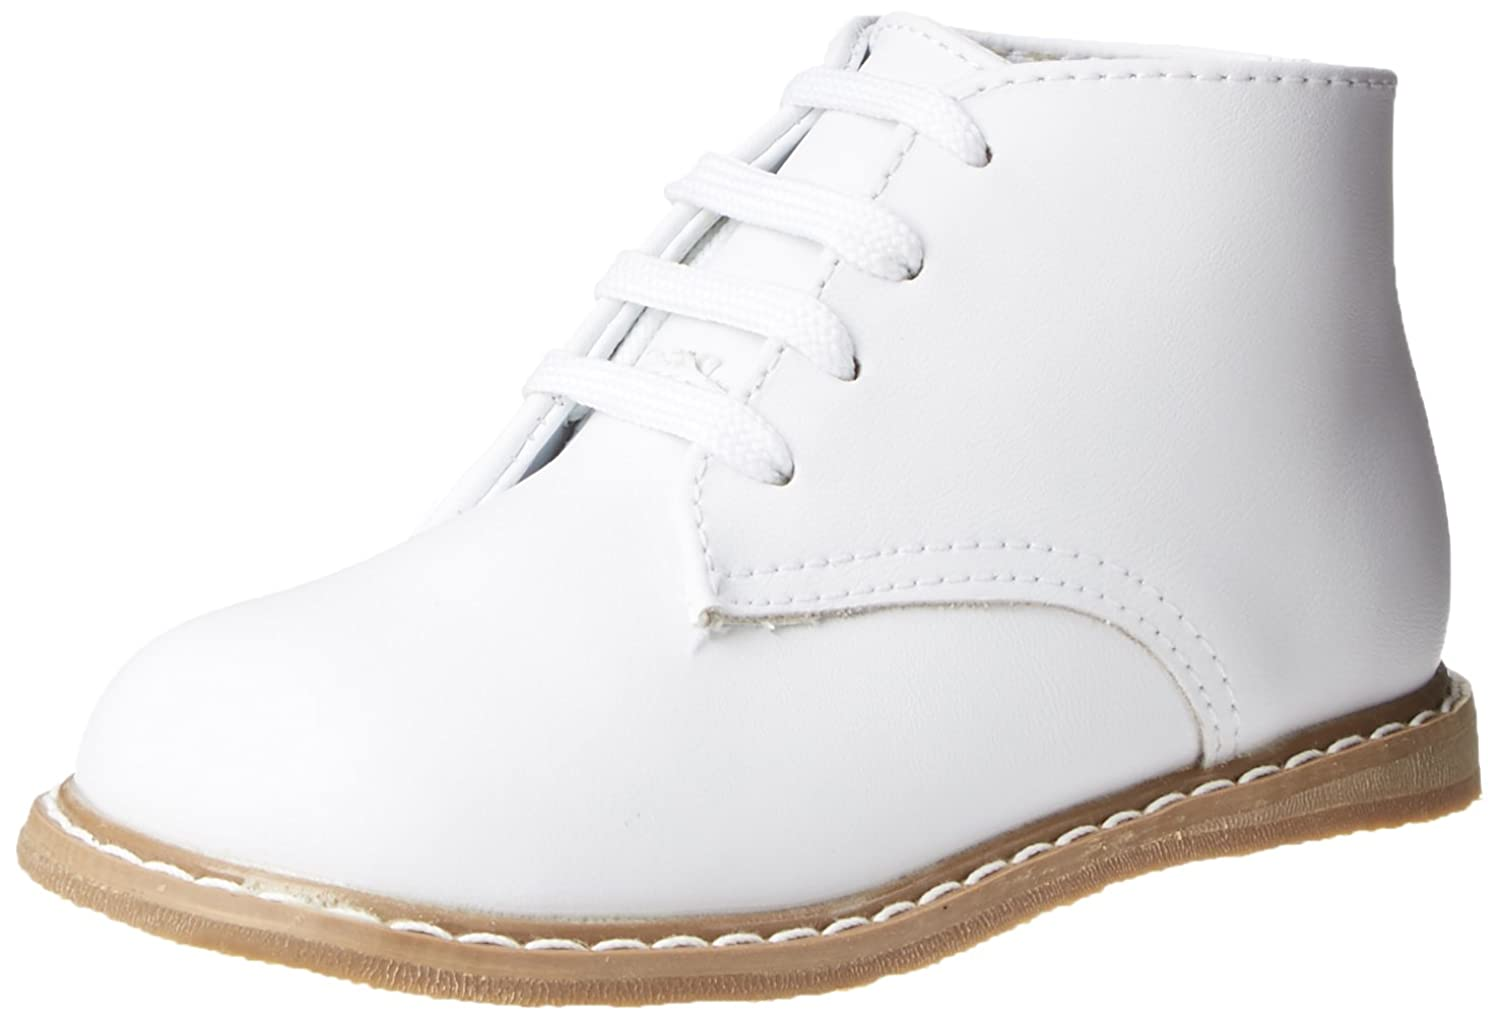 Stride Rite Hard Bottom Walking Shoes - Shoes For Yourstyles